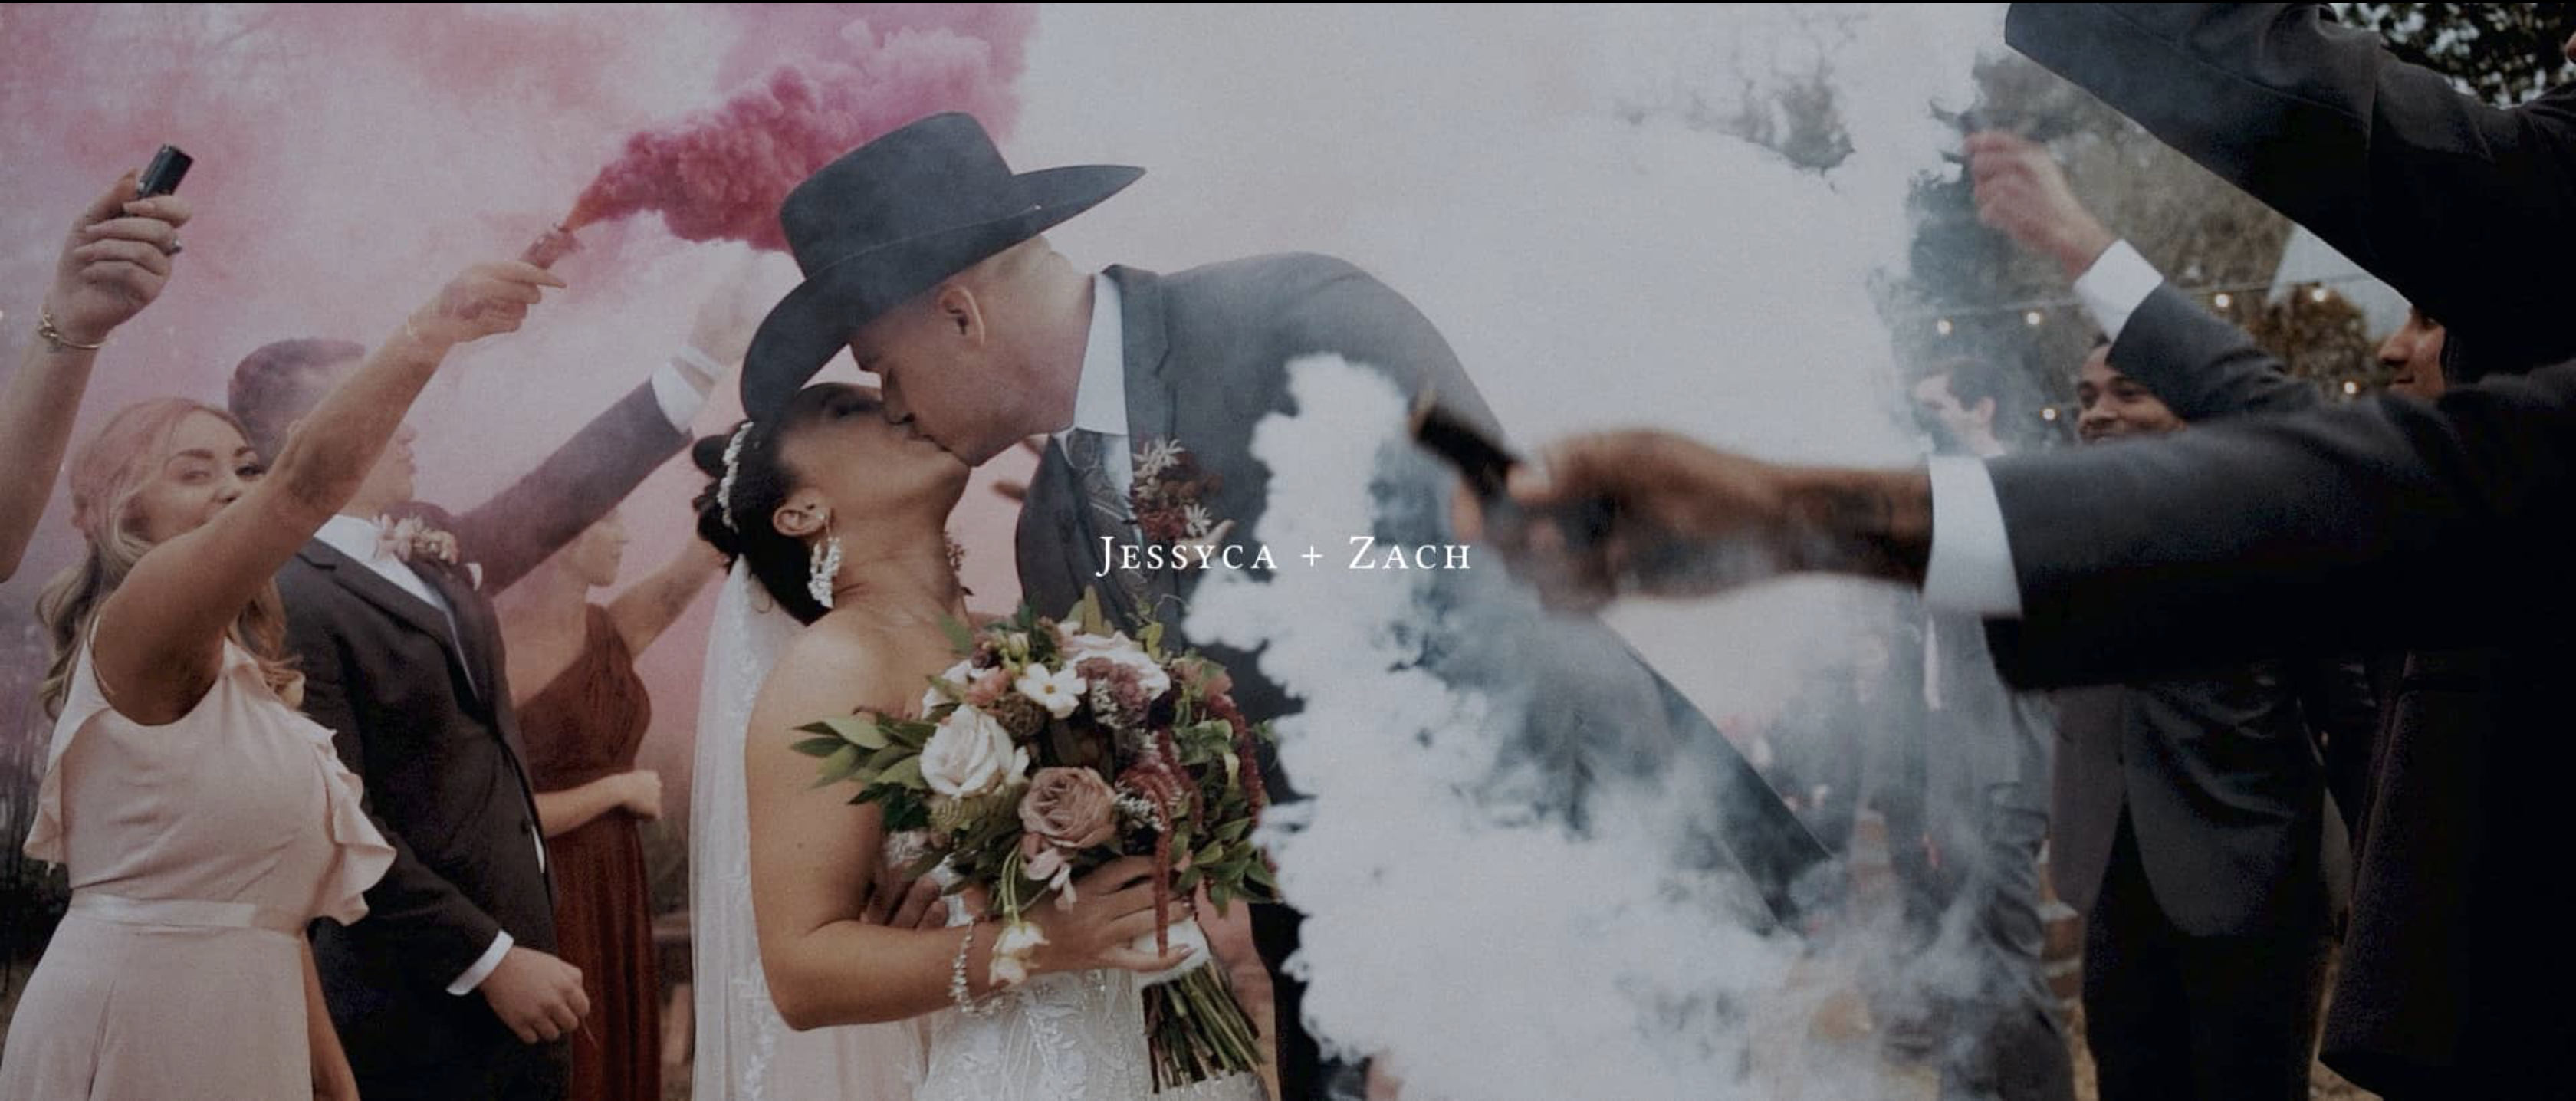 Jessyca + Zach | League City, Texas | butlers courtard